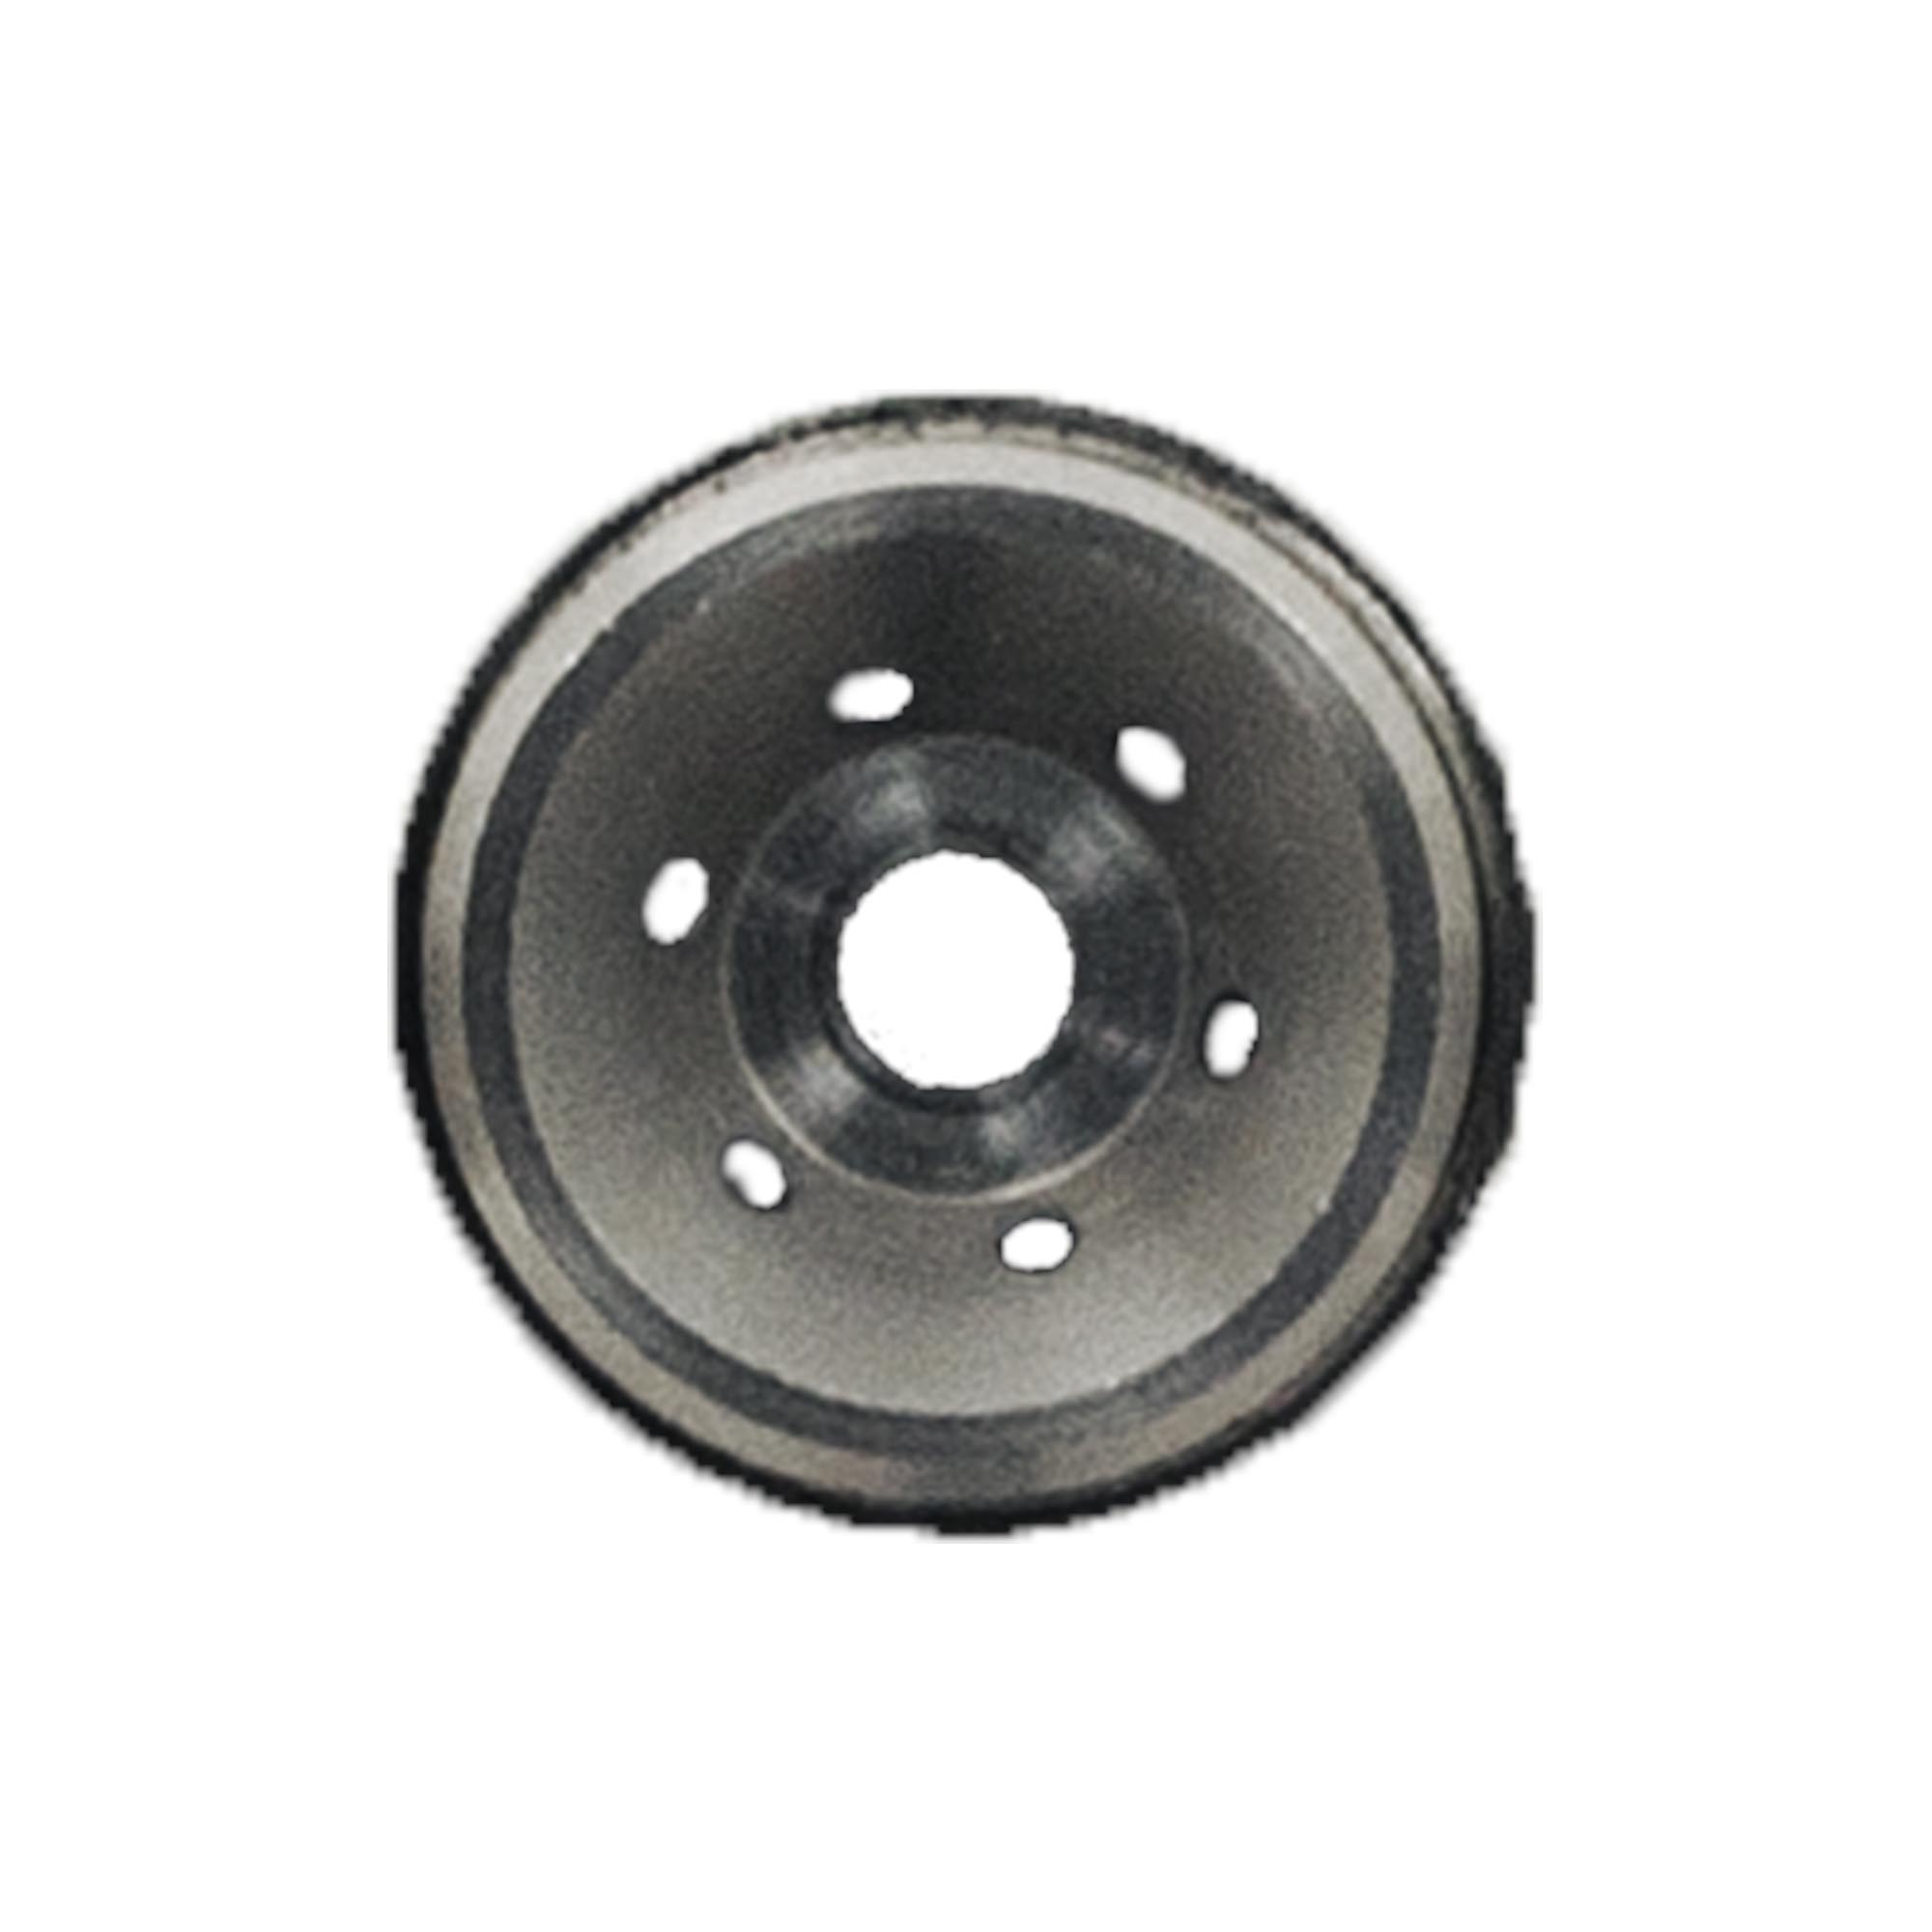 Model 901203-R20 Air Cap for ER1040SS